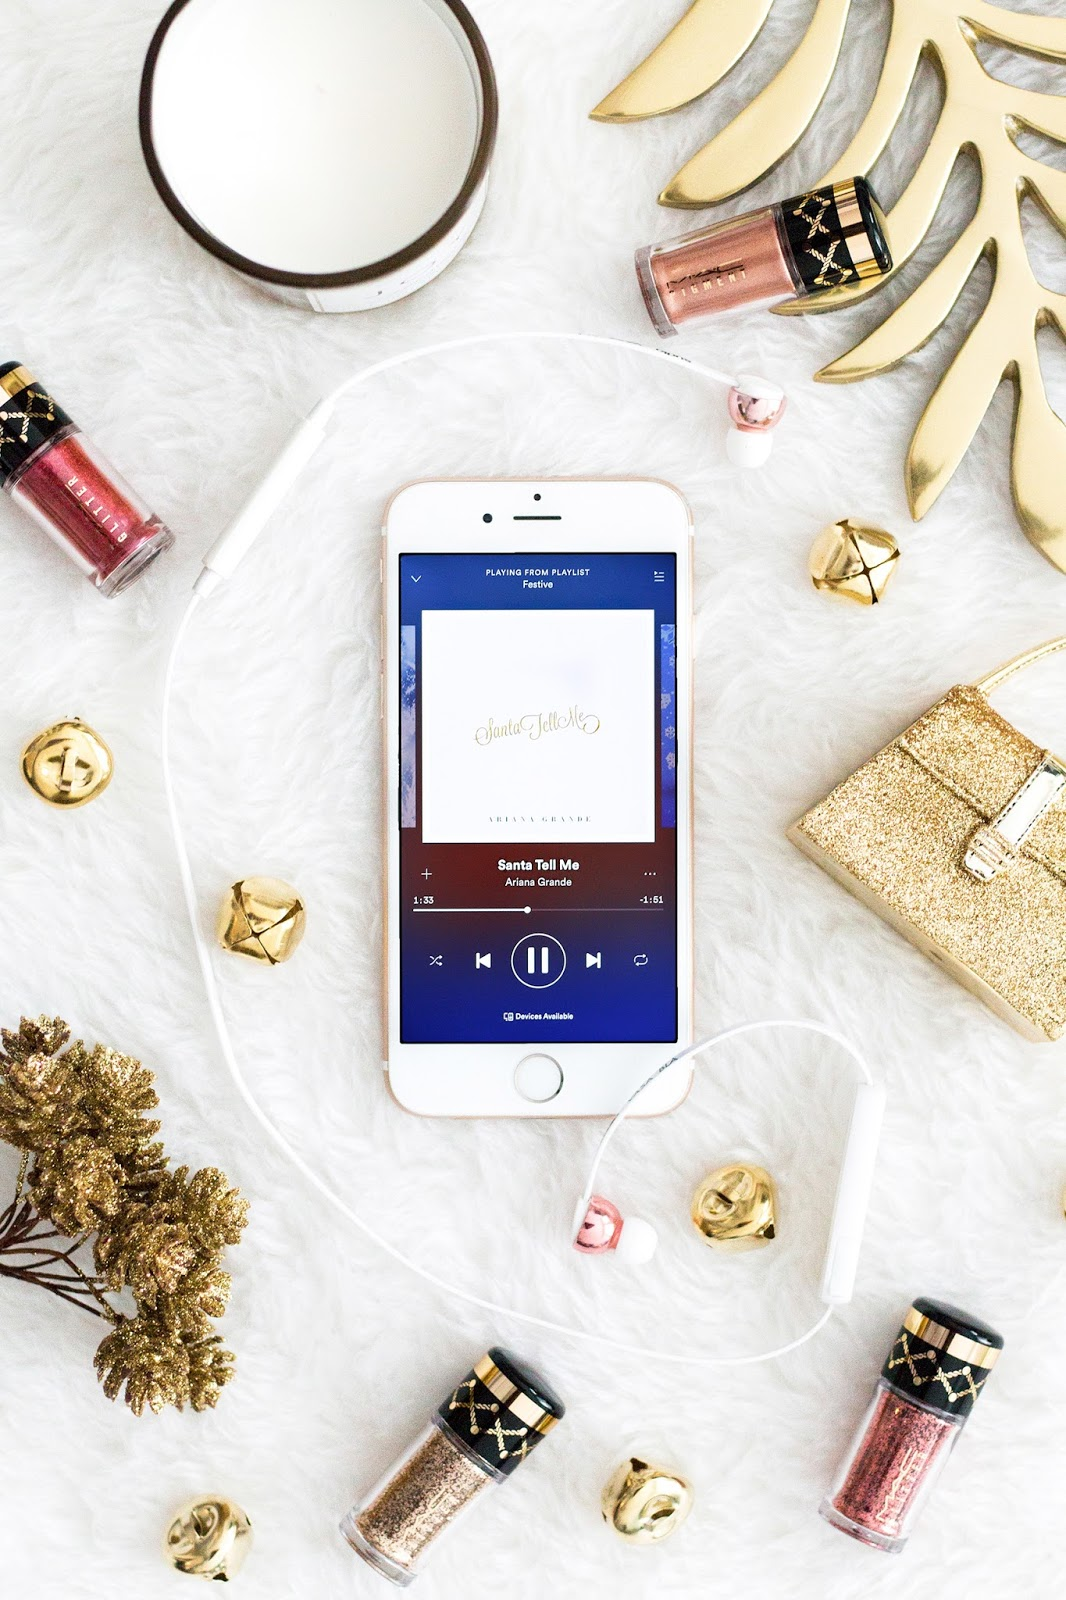 7 Christmas Songs You Need in Your Playlist | Christmas playlist | Sudio discount code